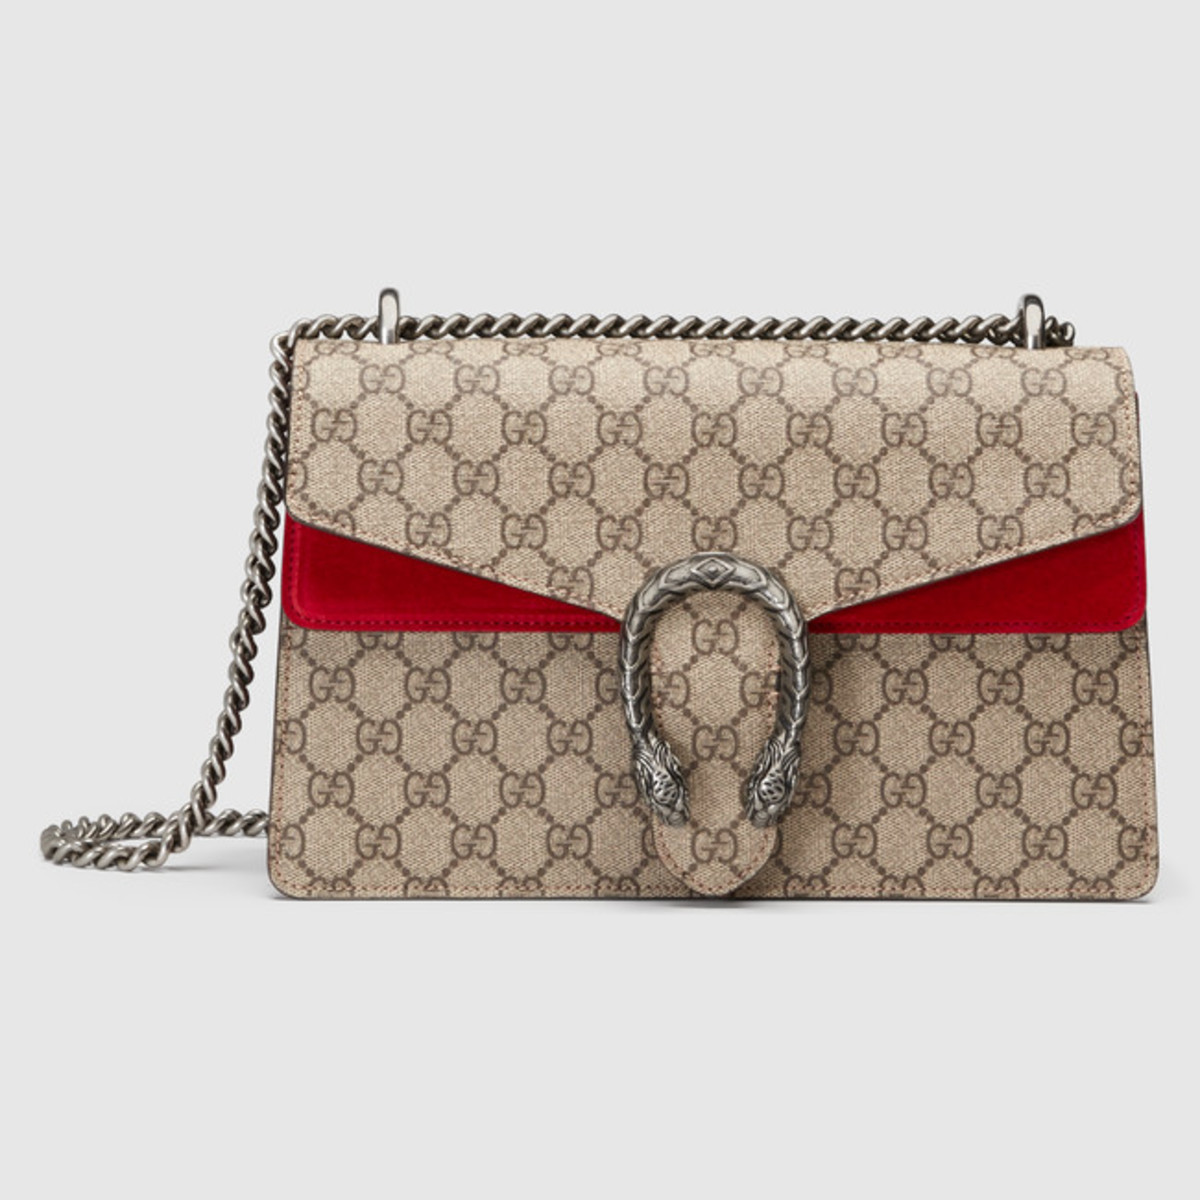 Hot Designer Handbags of the Moment, Newly Updated 2019